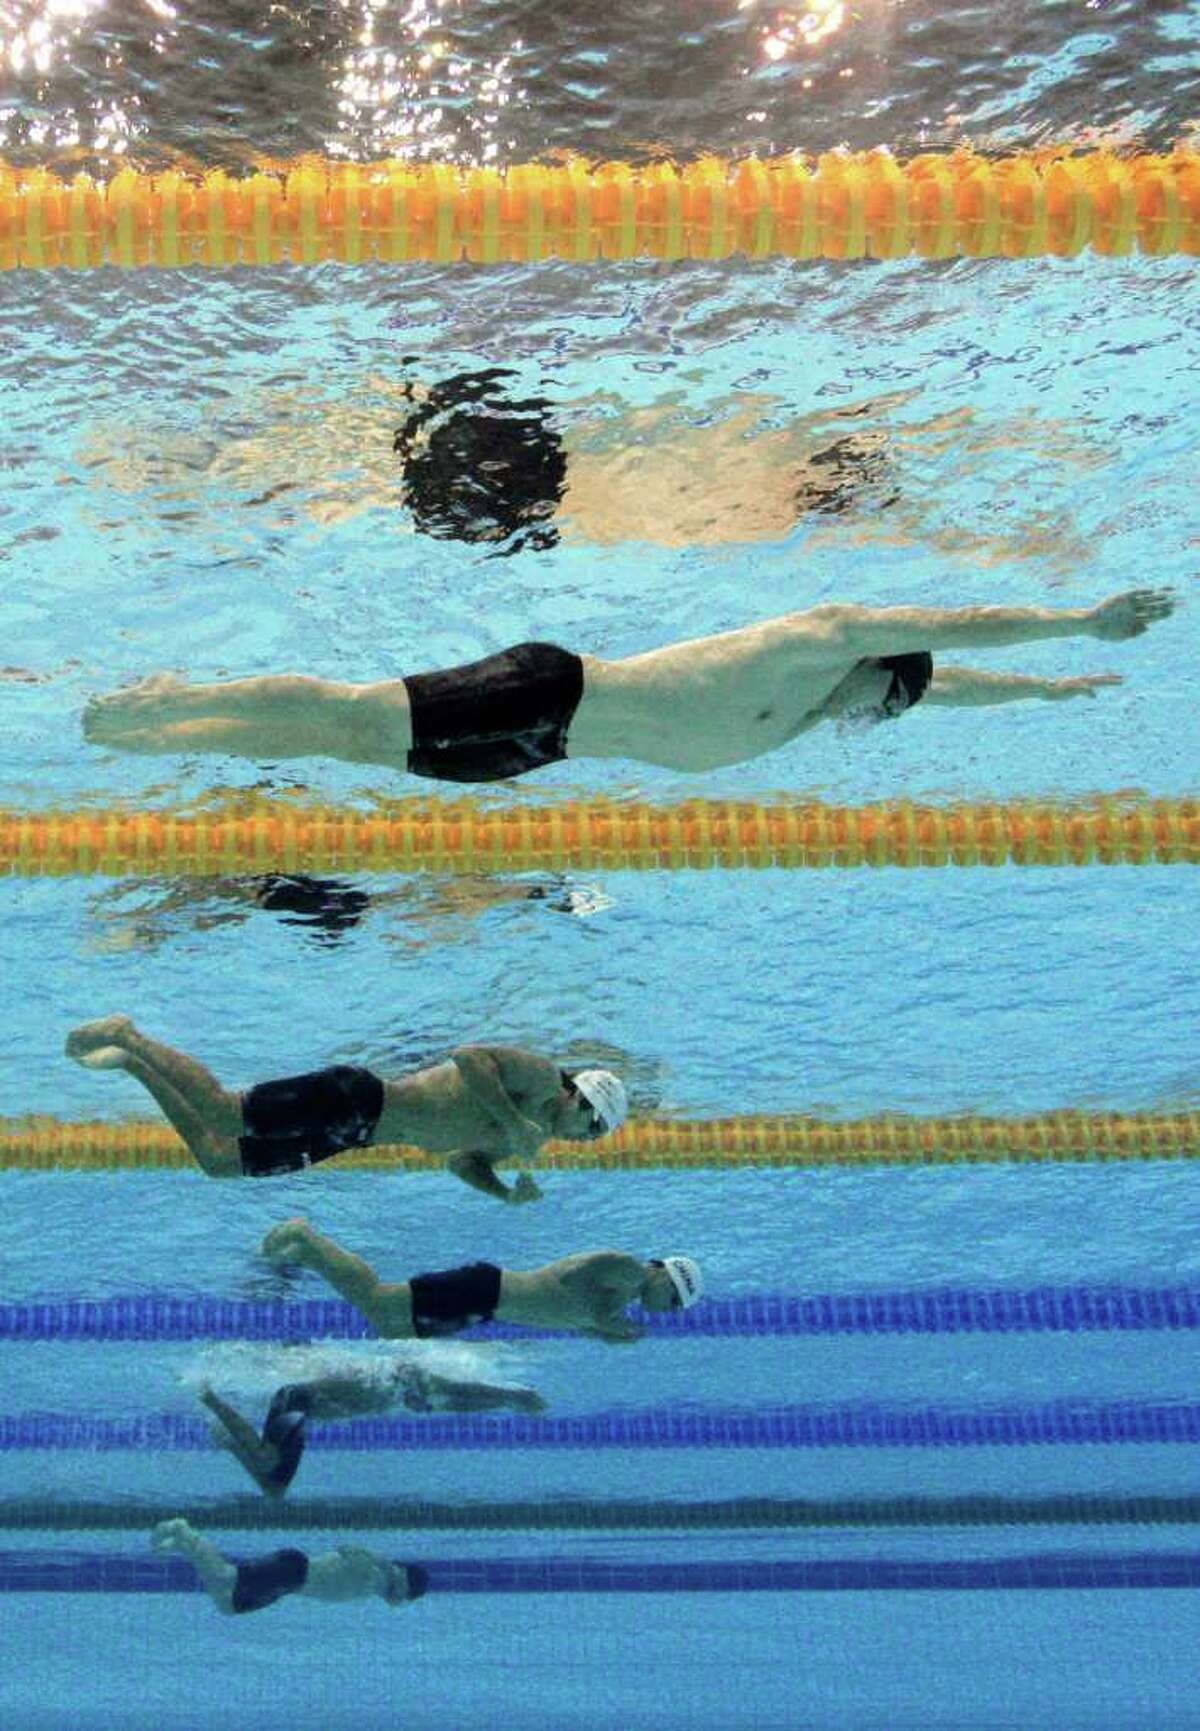 GUANGZHOU, CHINA - NOVEMBER 18: Rui Peng Xue (top) of China and Kyuwoong Choi (2nd Top) of South Korea competes in the Men's 200m Breaststroke final during day six of the 16th Asian Games Guangzhou 2010 at Aoti Aquatics Centre on November 18, 2010 in Guangzhou, China. (Photo by Adam Pretty/Getty Images) *** Local Caption *** Rui Peng Xue;Kyuwoong Choi